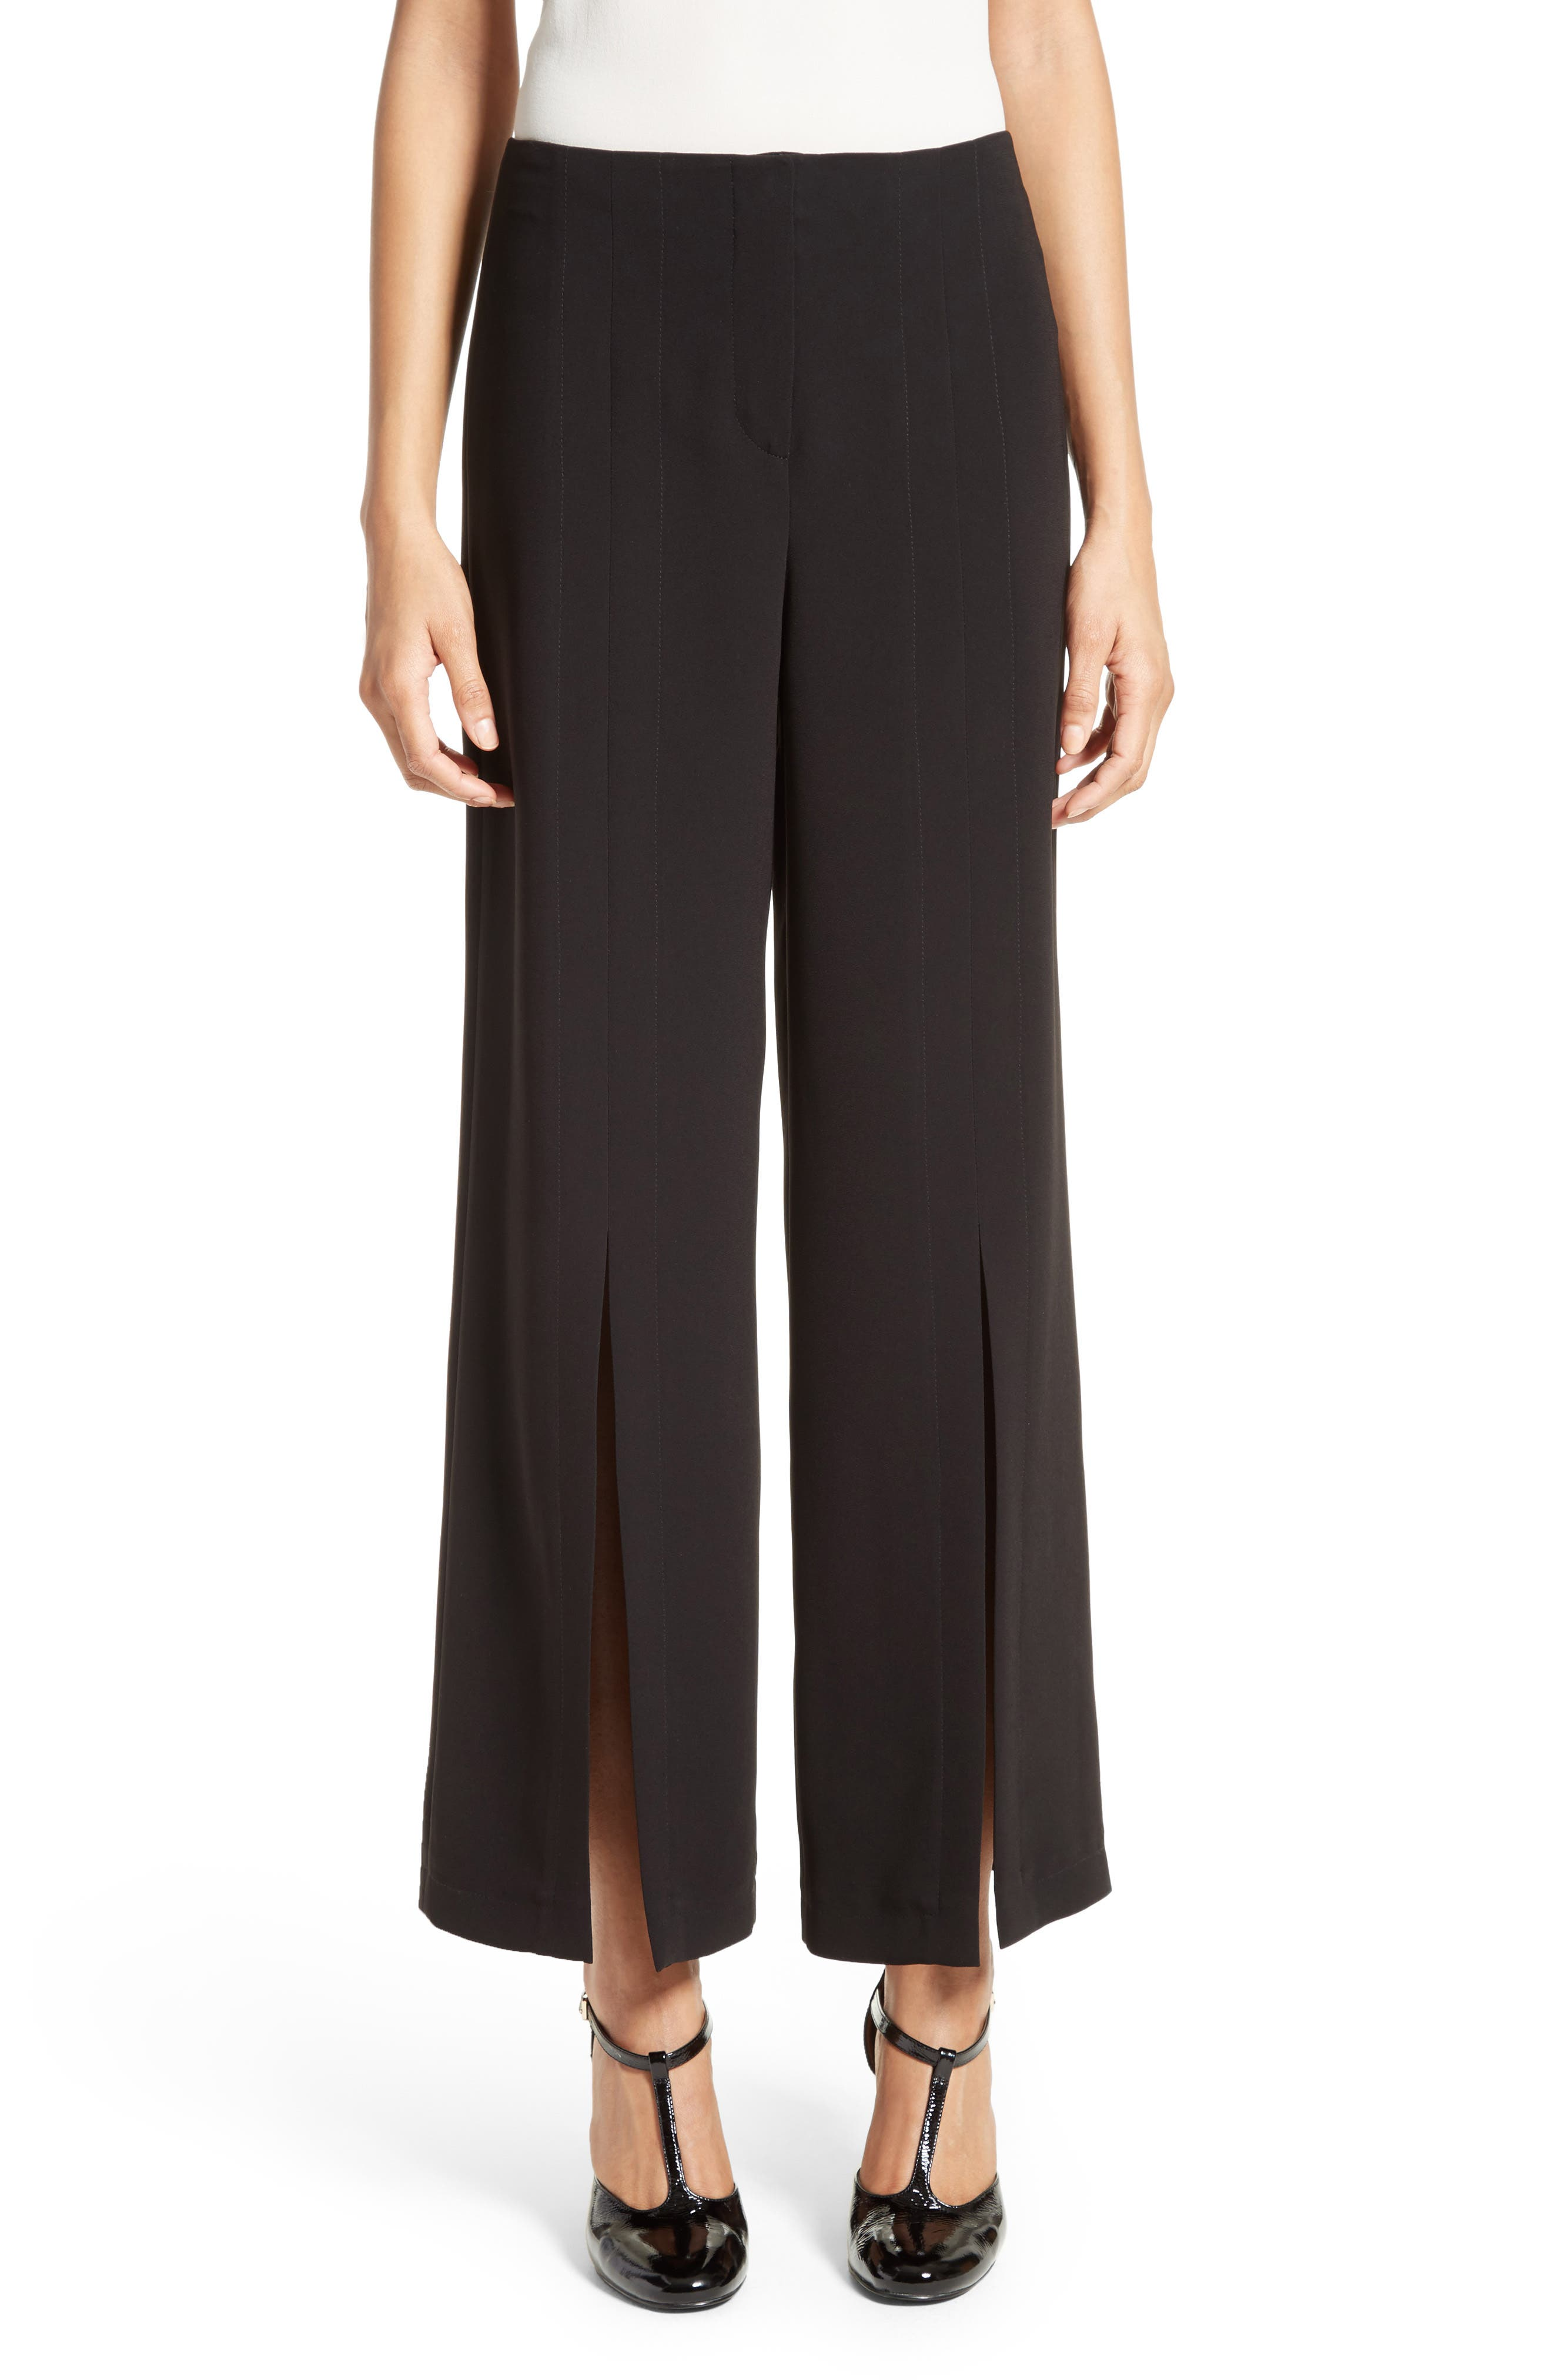 Yigal Azrouël Slit Wide Leg Pants